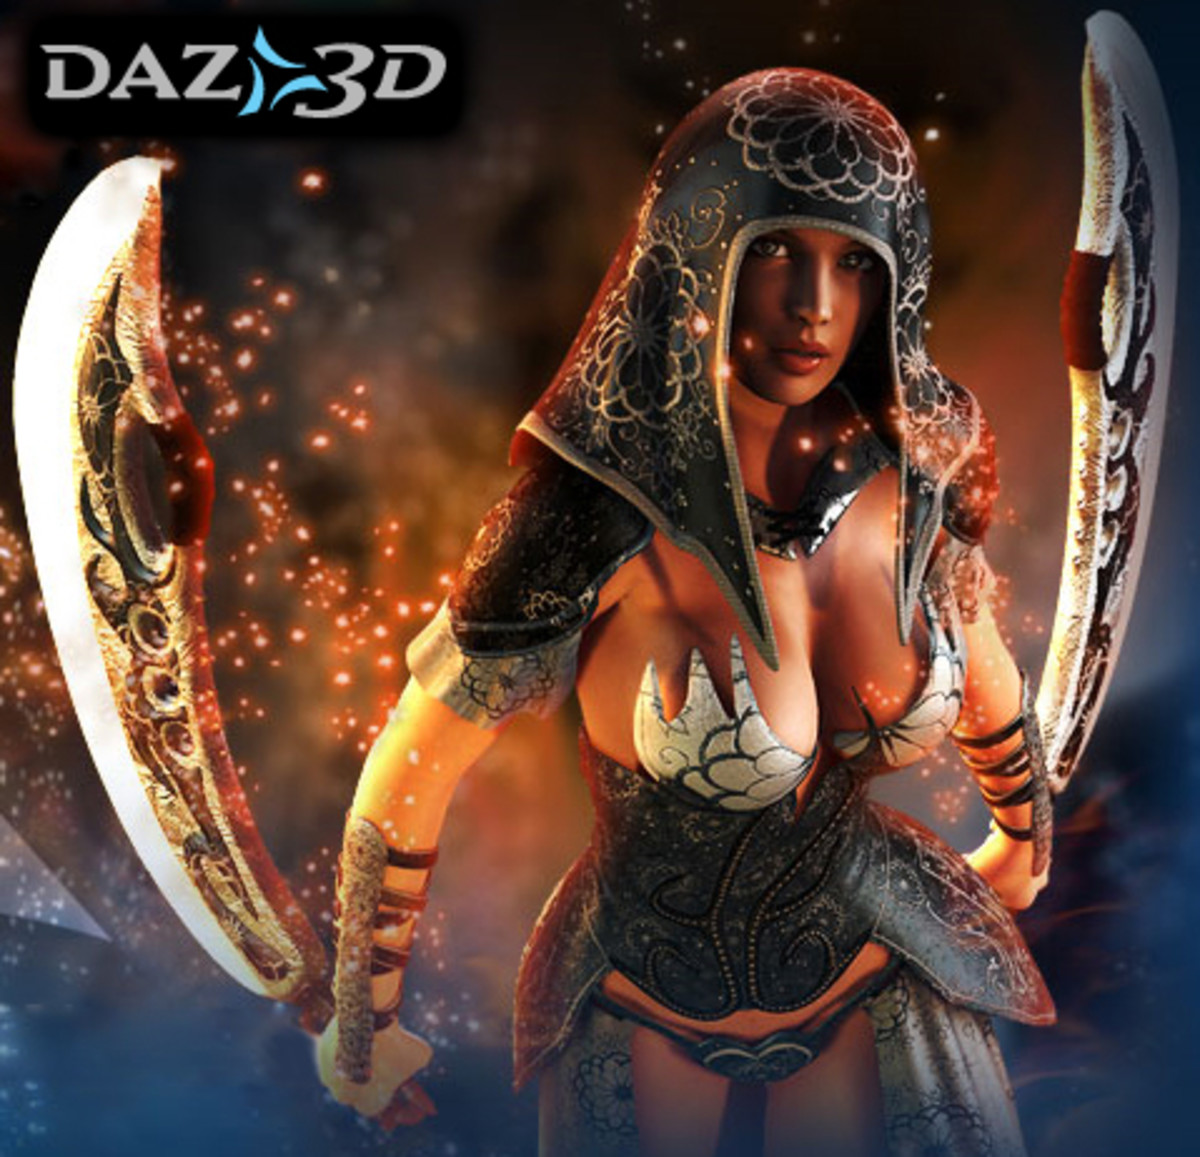 A Beginner's Guide to 3D Art and DAZ Studio